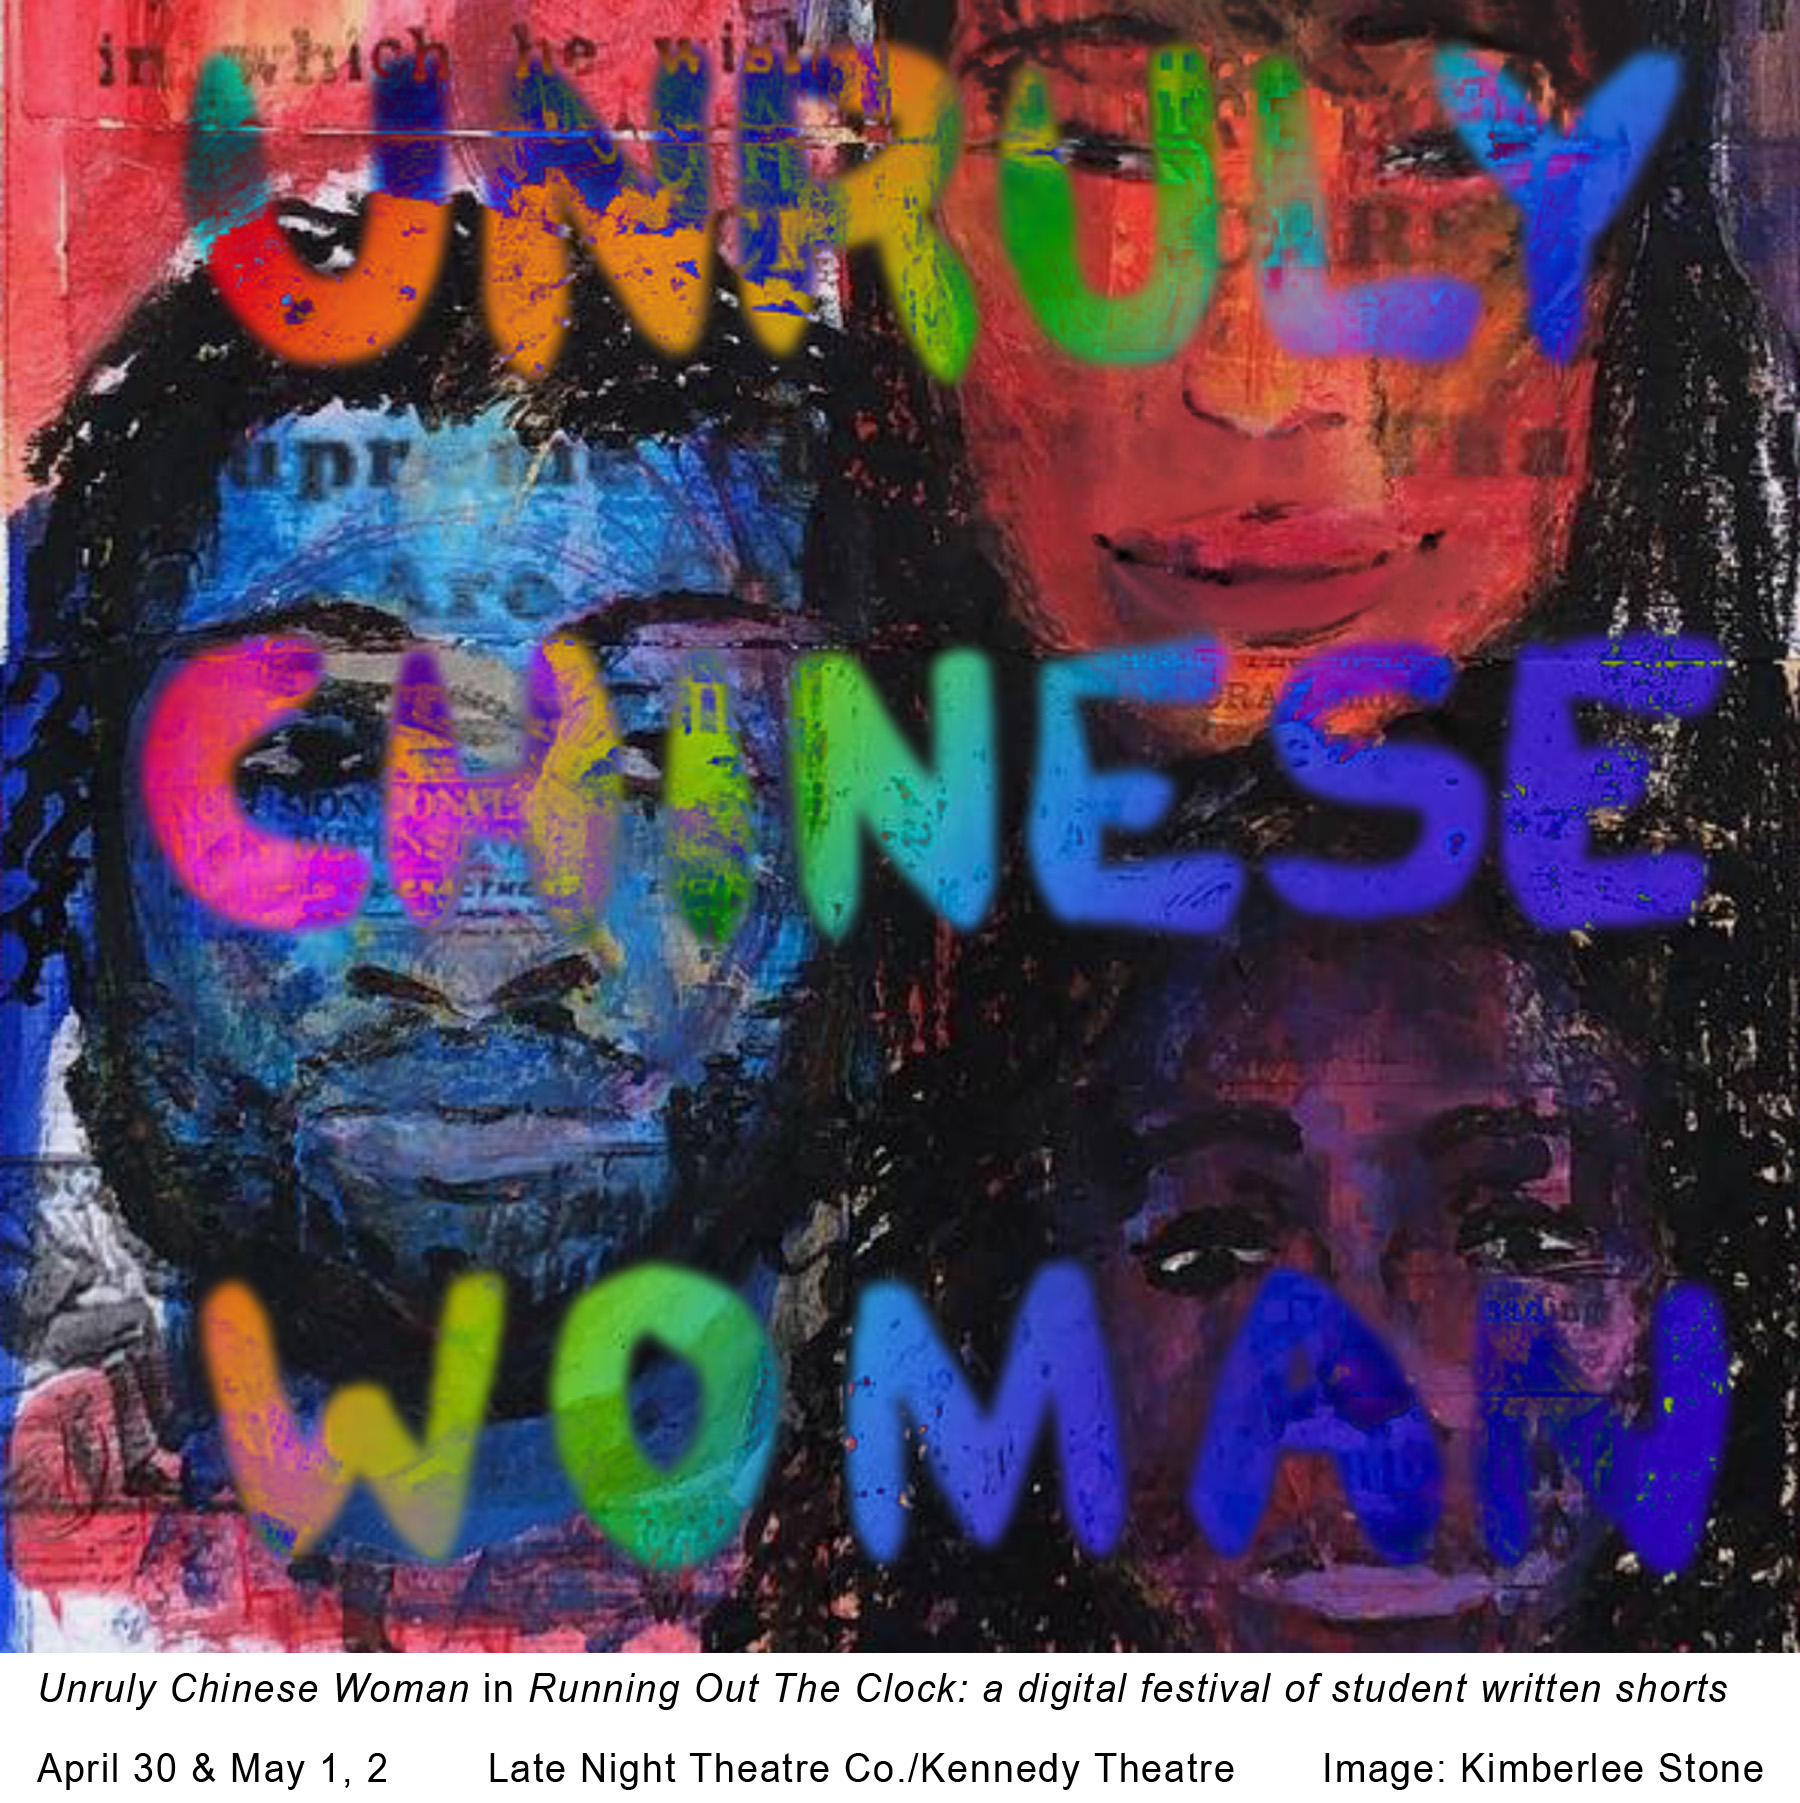 """Painting of layers and three faces with words """"Unruly Chinese Woman"""" over them. Text under image reads, """"Unruly Chinese Woman in Running Out The Clock: a digital festival of student written shorts. APril 30 & May 1, 2. Late Night Theatre Co./Kennedy Theatre. Image: Kimberlee Stone."""""""